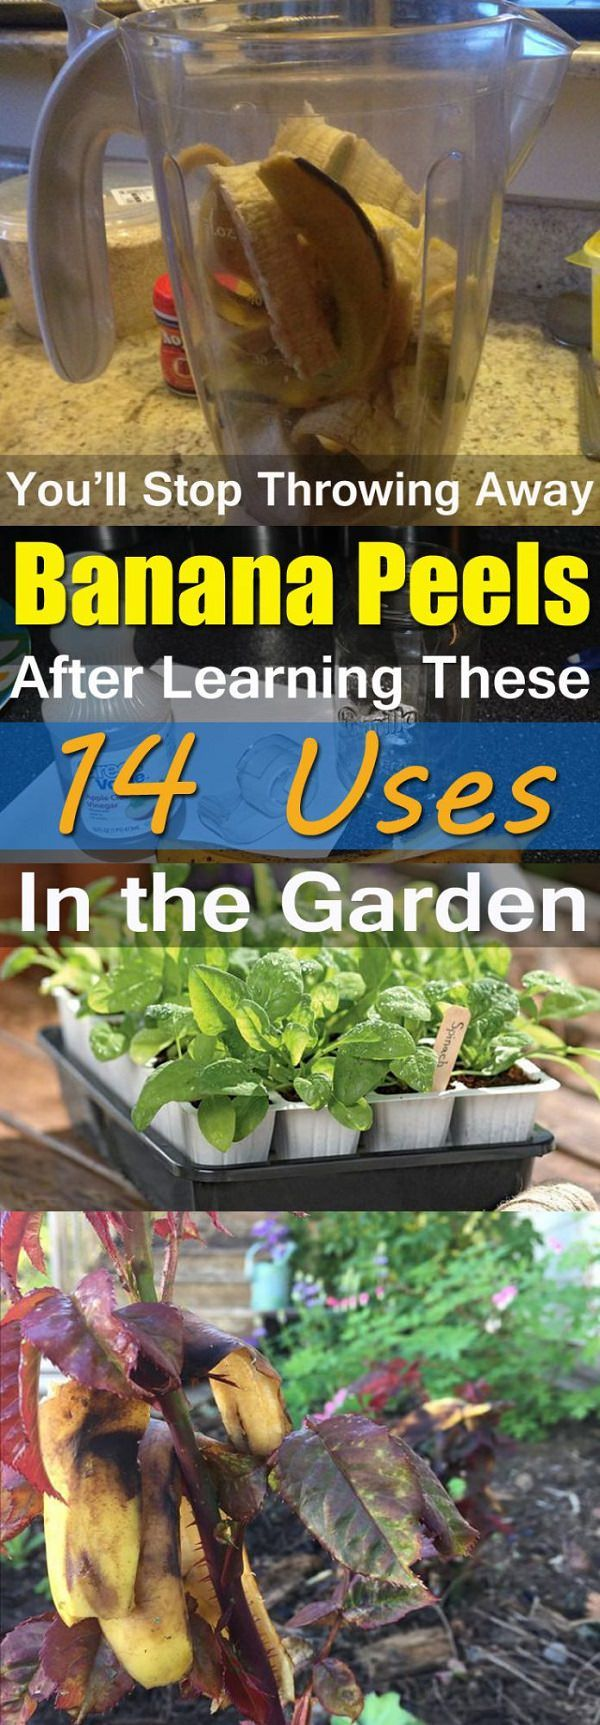 Before you throw another banana peel, learn these amazing uses of banana peels in the garden!